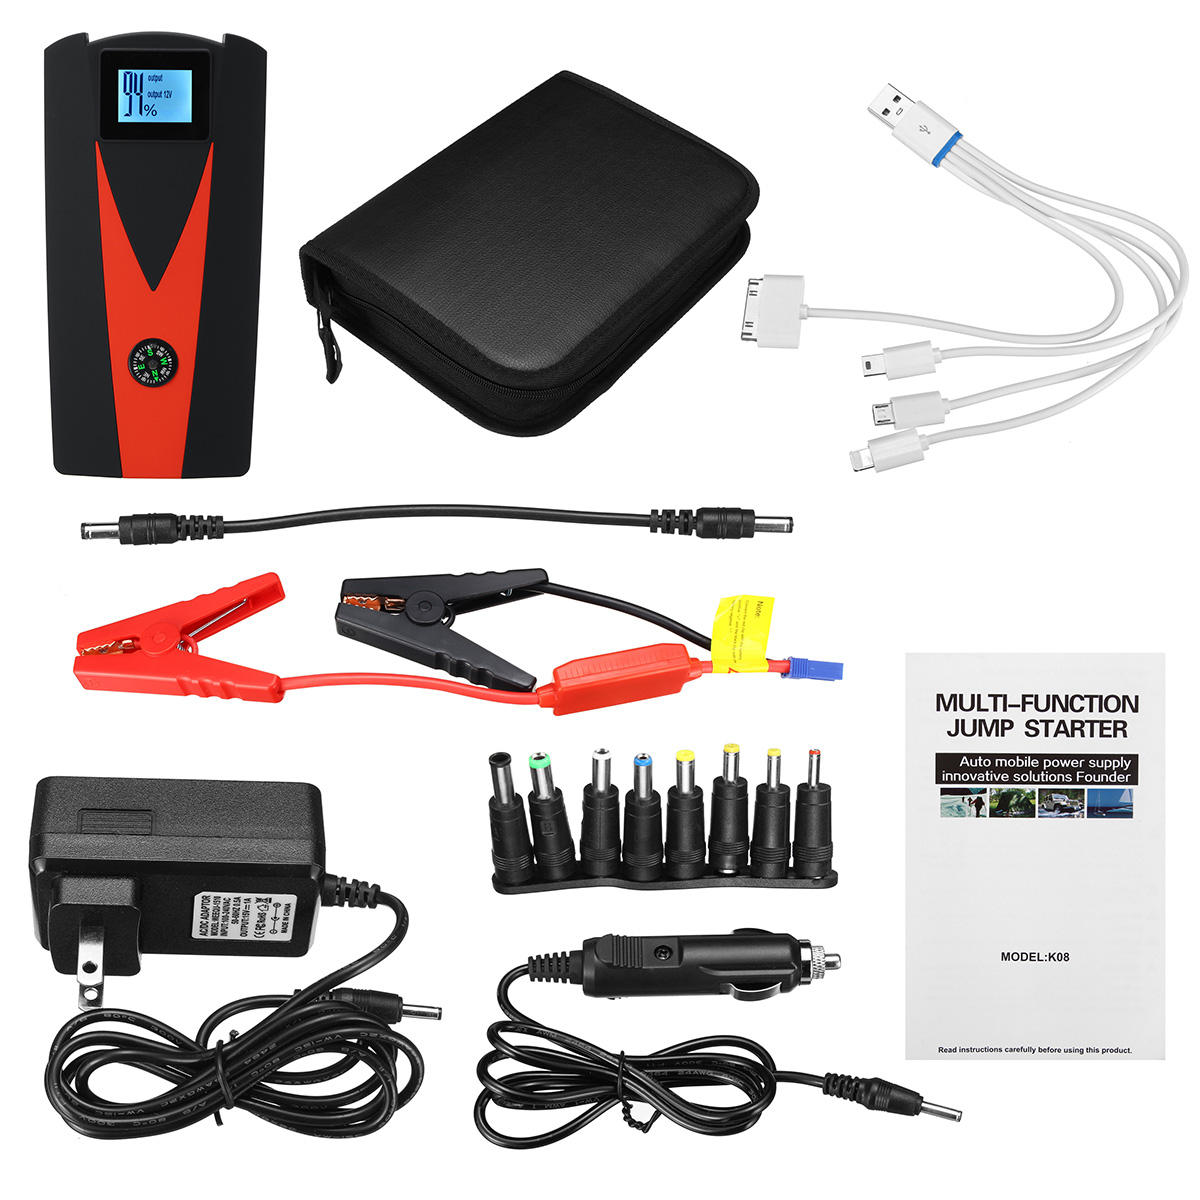 99900 Mah Dual Usb Car Jump Starter Lcd Auto Battery Booster Portable Power Pack With Jumper Cables